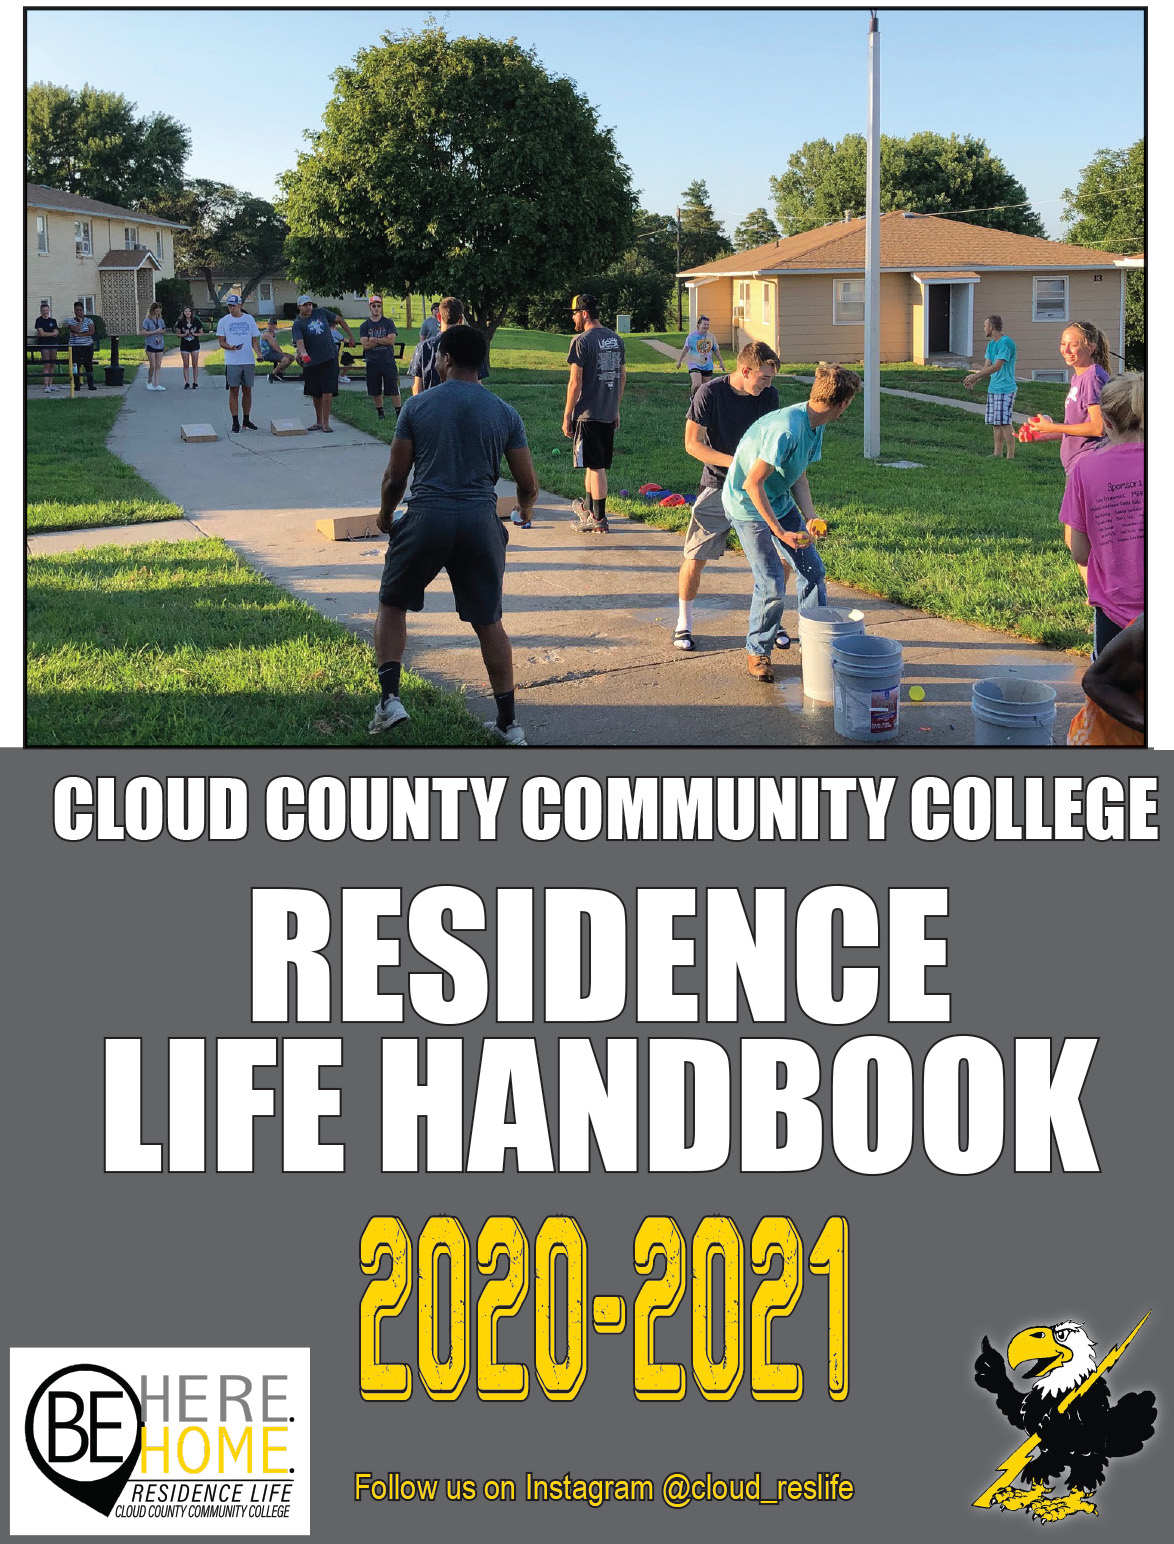 A photo of the 2020-2021 Residence Life handbook cover.